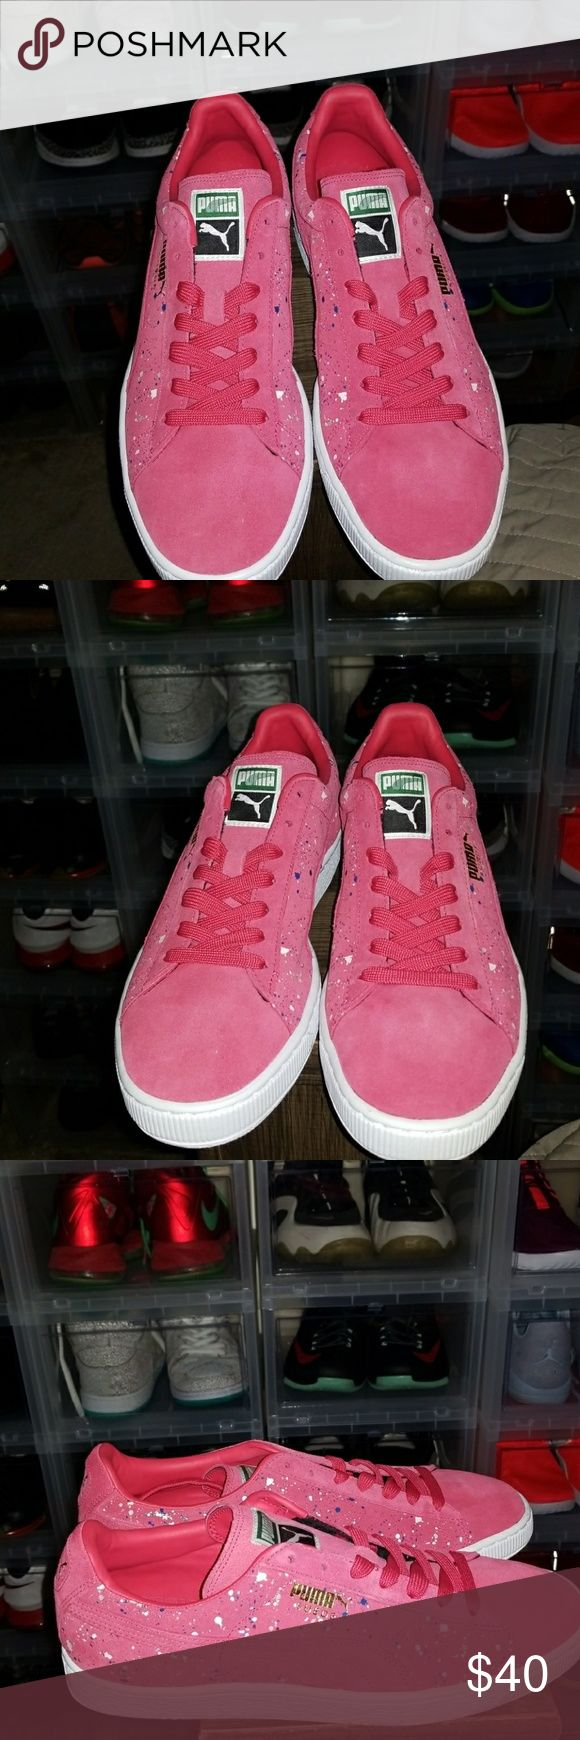 New Puma Classics Suede Splatter Sneaker/ Gymshoe New without box Puma Classics Suede Splatter Sneakers. Pink suede shoes with blue, white, and grey paint splatter design. Size 12 Mens Puma Shoes Sneakers